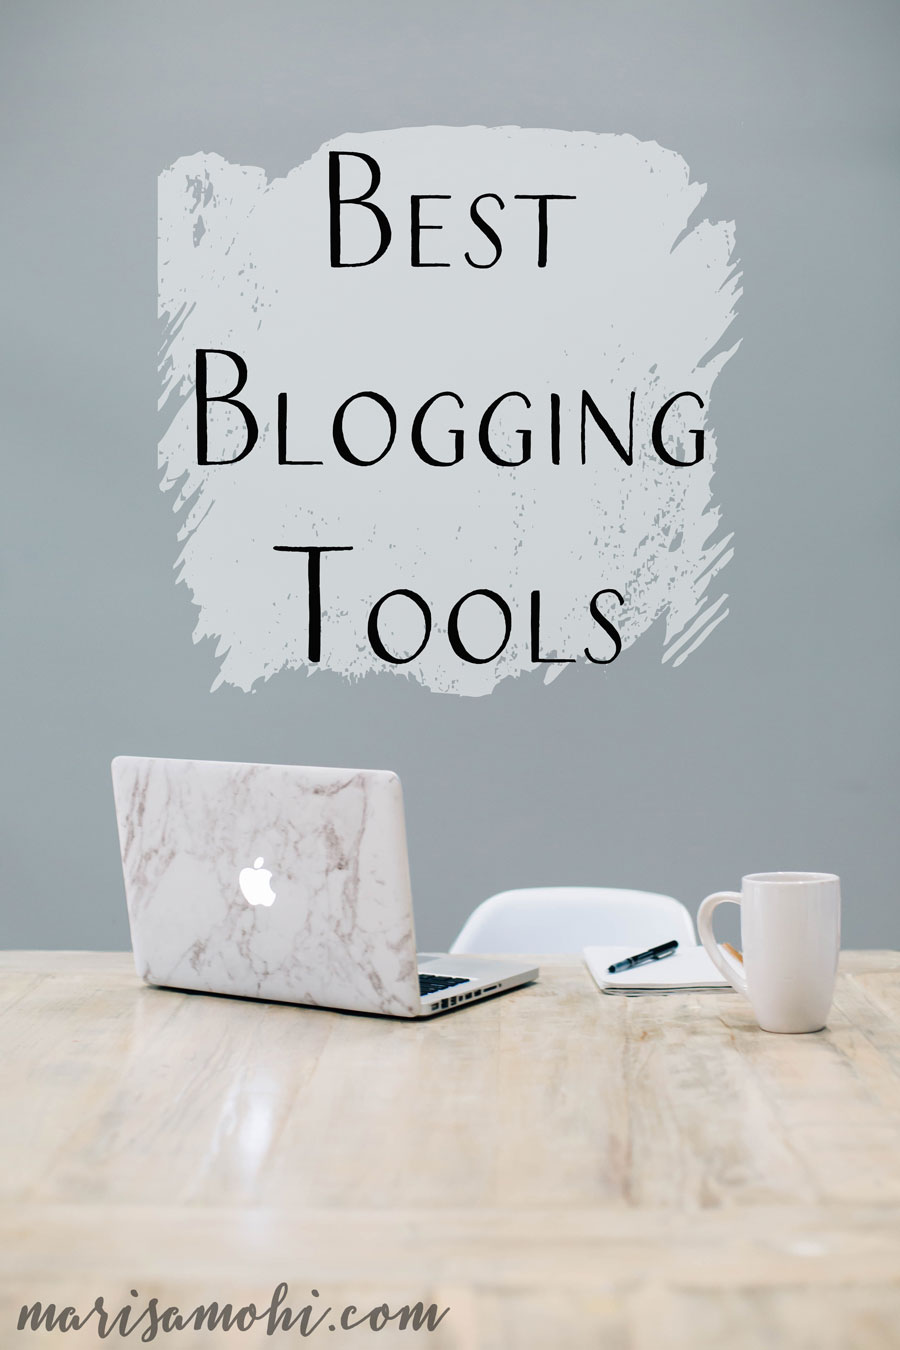 Best Blogging Tools | These are the best blogging tools I've found. While some of them are super simple, some of these blogging tools are life savers.